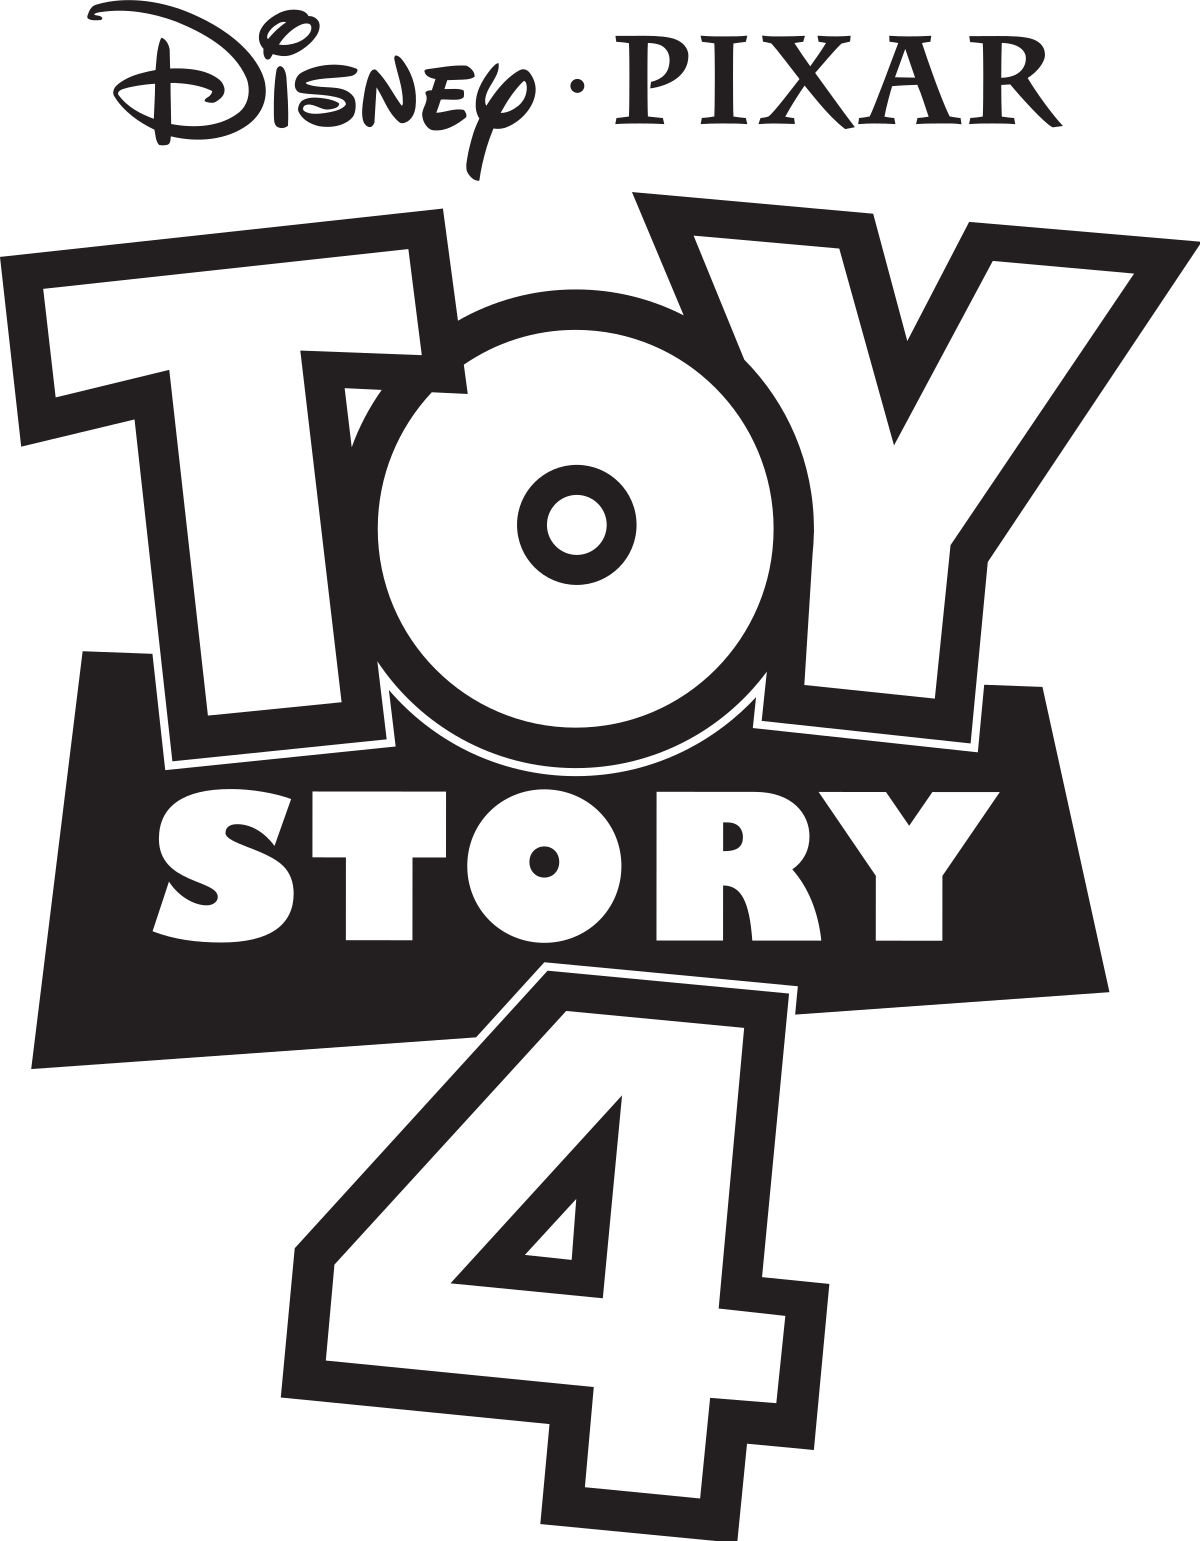 toy story 4 logo black png #41219